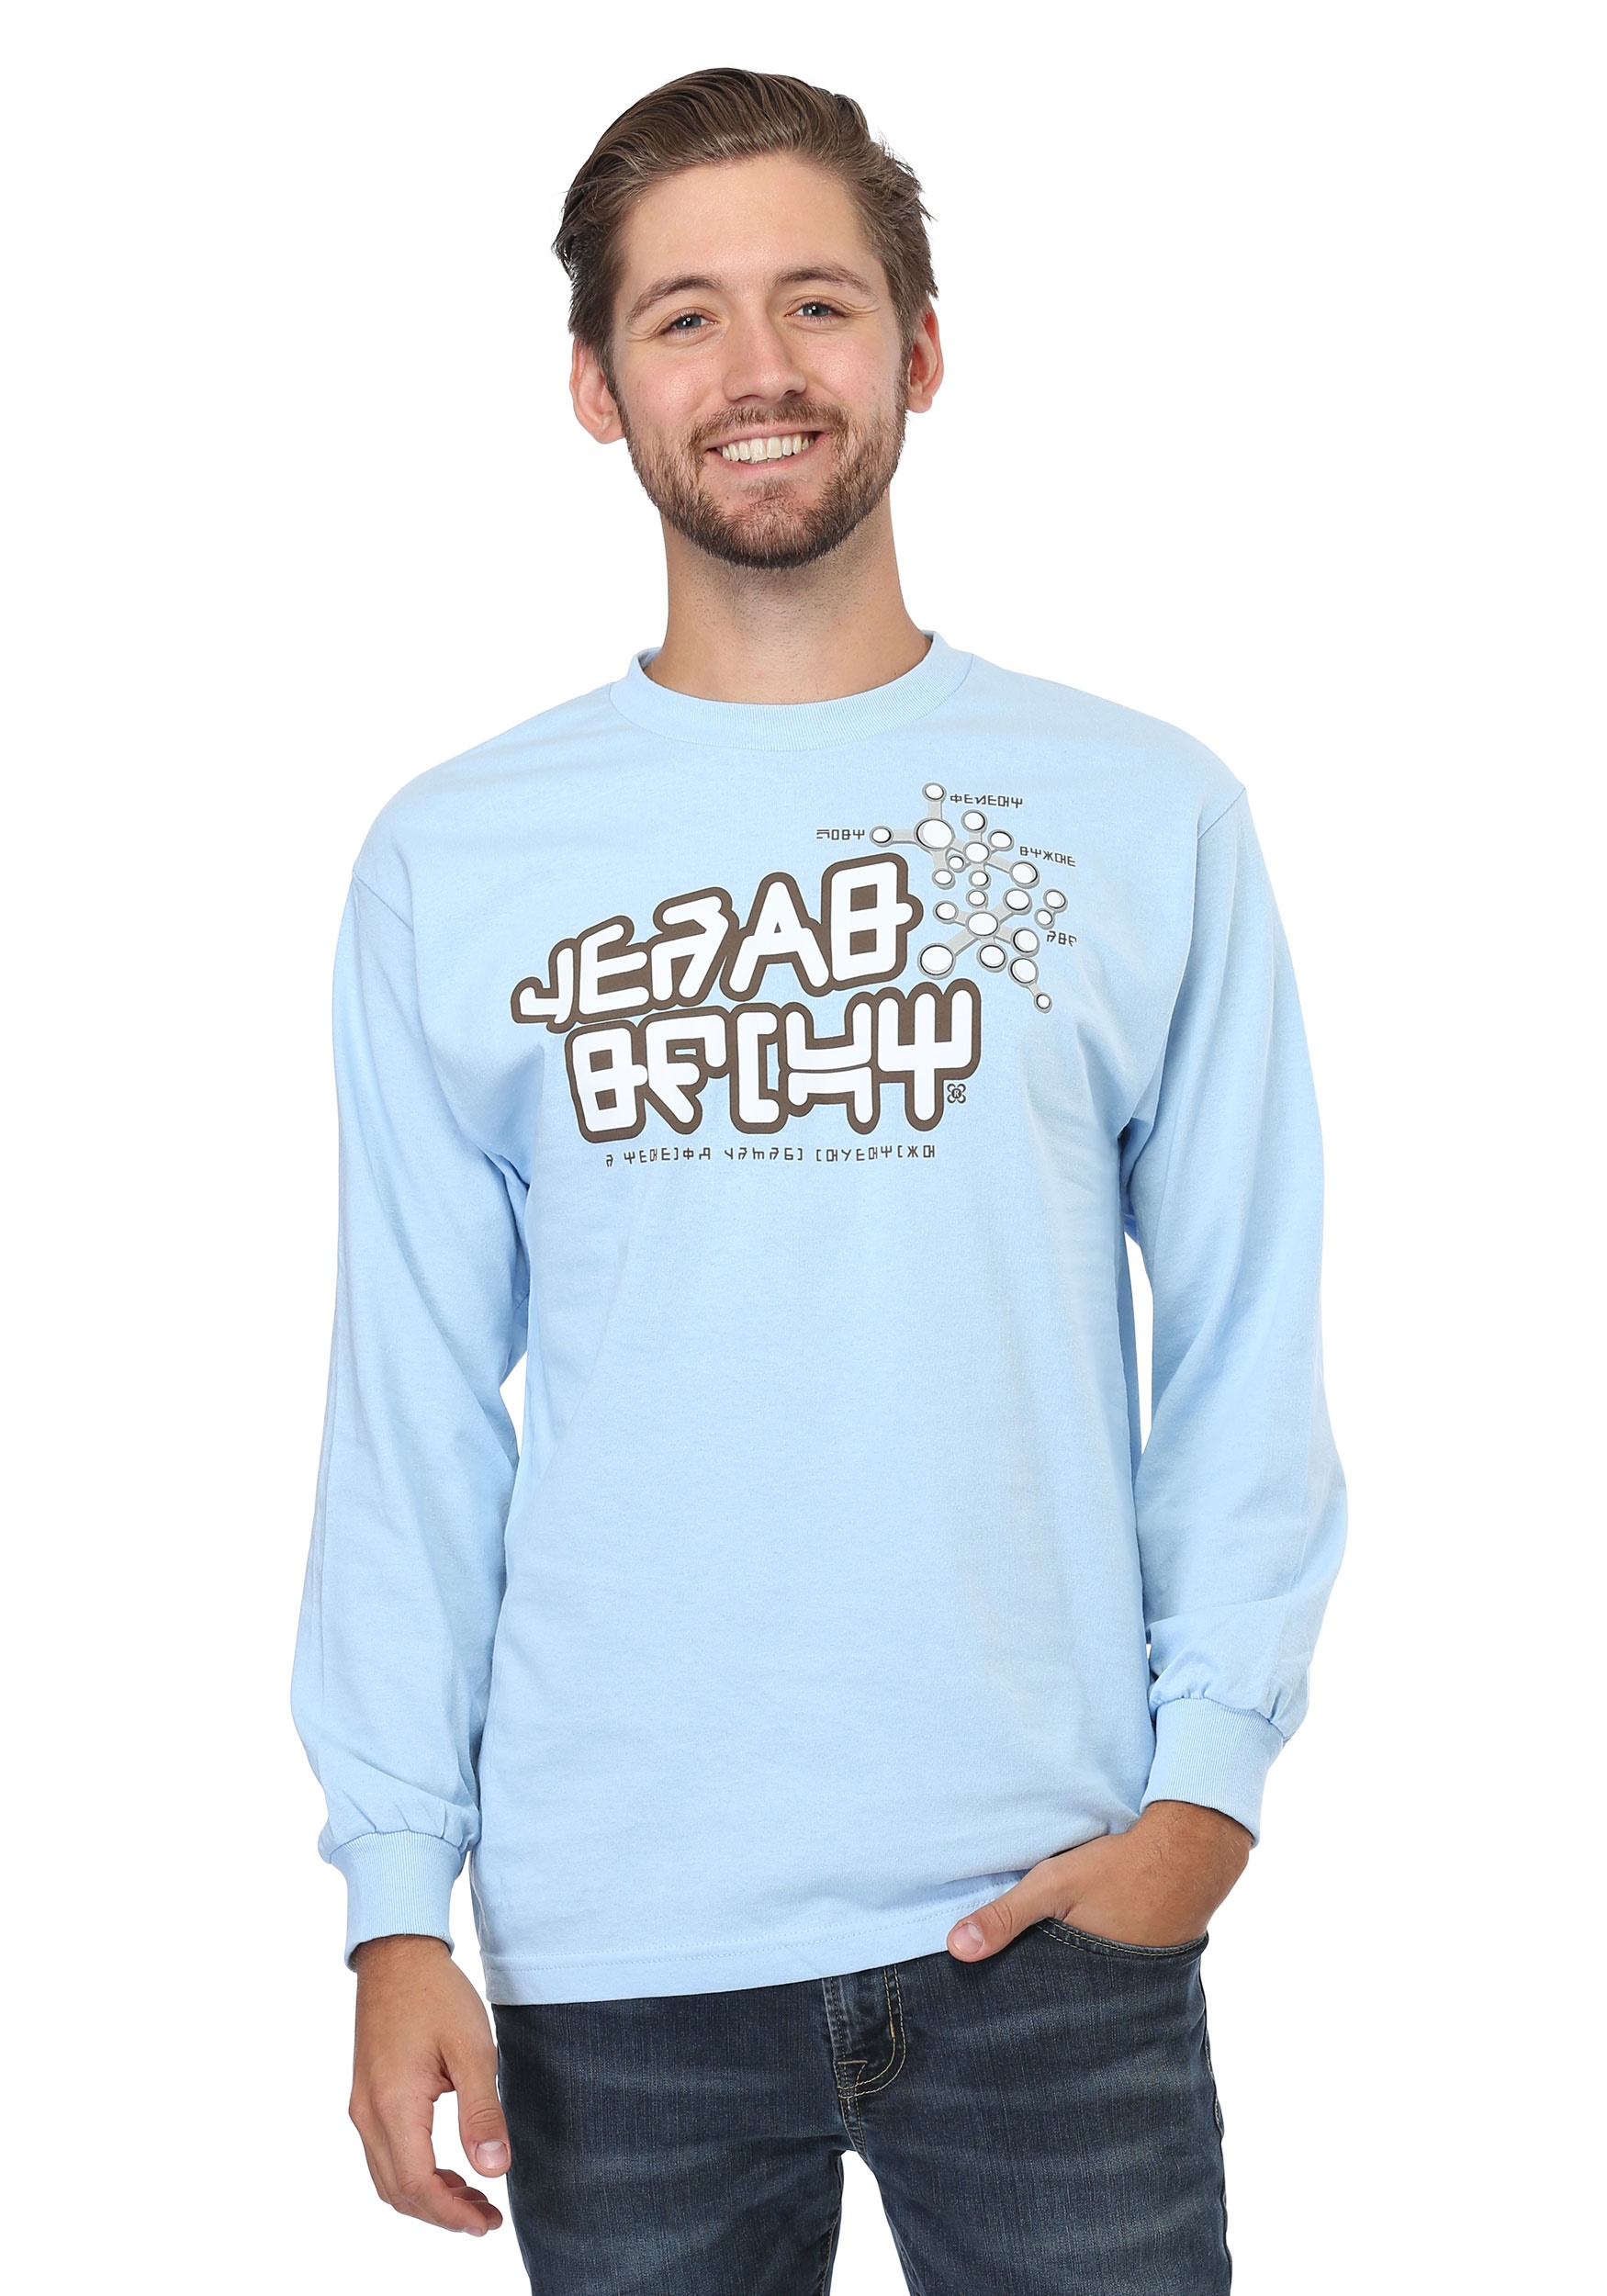 Peter Quill Star Lord Cotton Light Blue Gear Shift T-shirt - DeluxeAdultCostumes.com